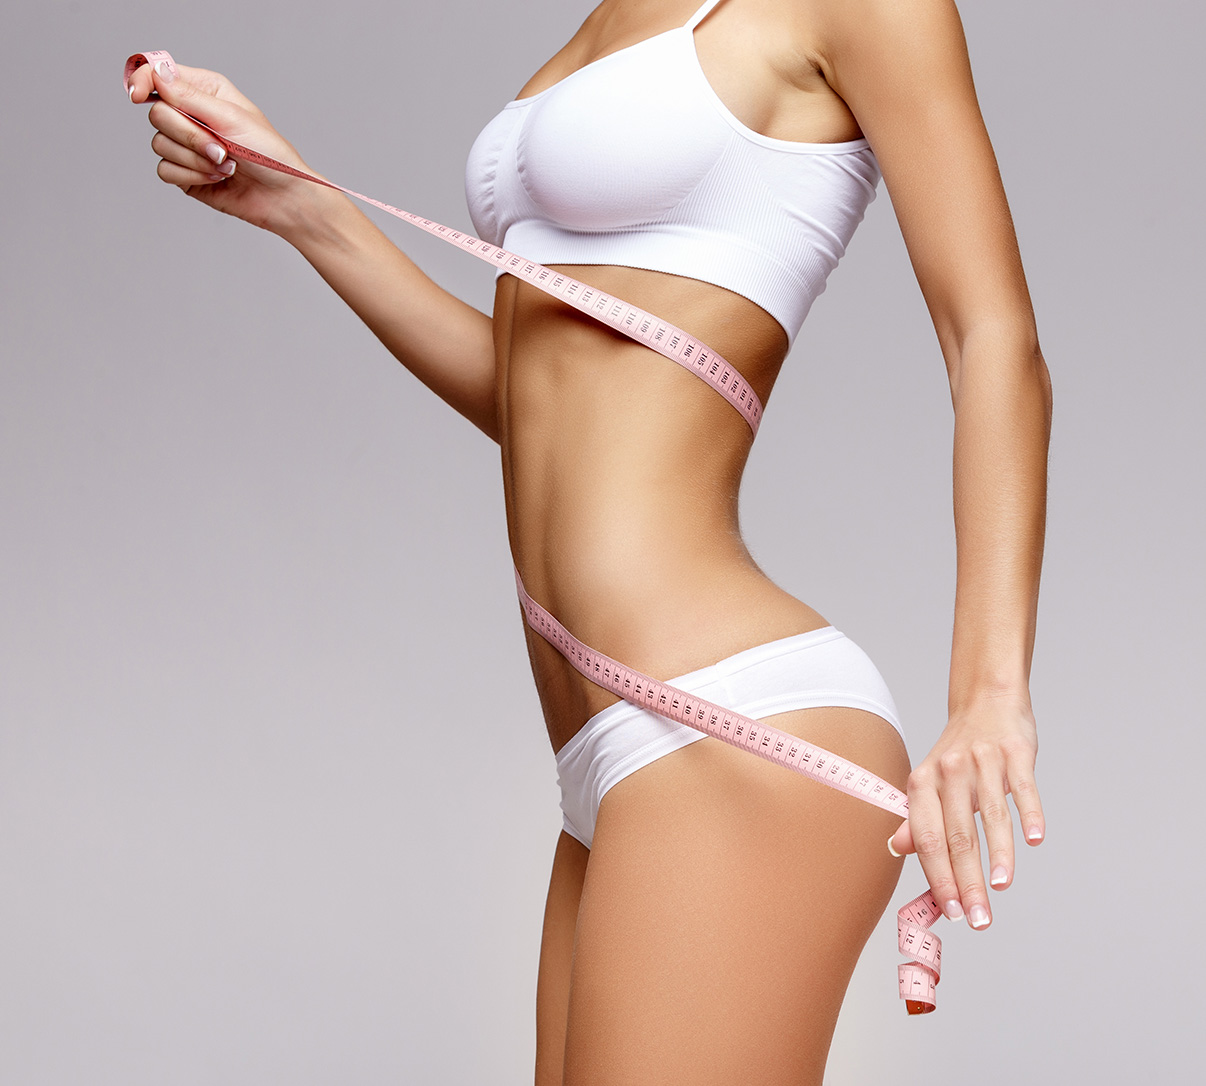 Side view of WarmSculpting model in white sports bra and panties with tape measure wrapped around her illustrating body sculpting success from Sculptique Aesthetics.